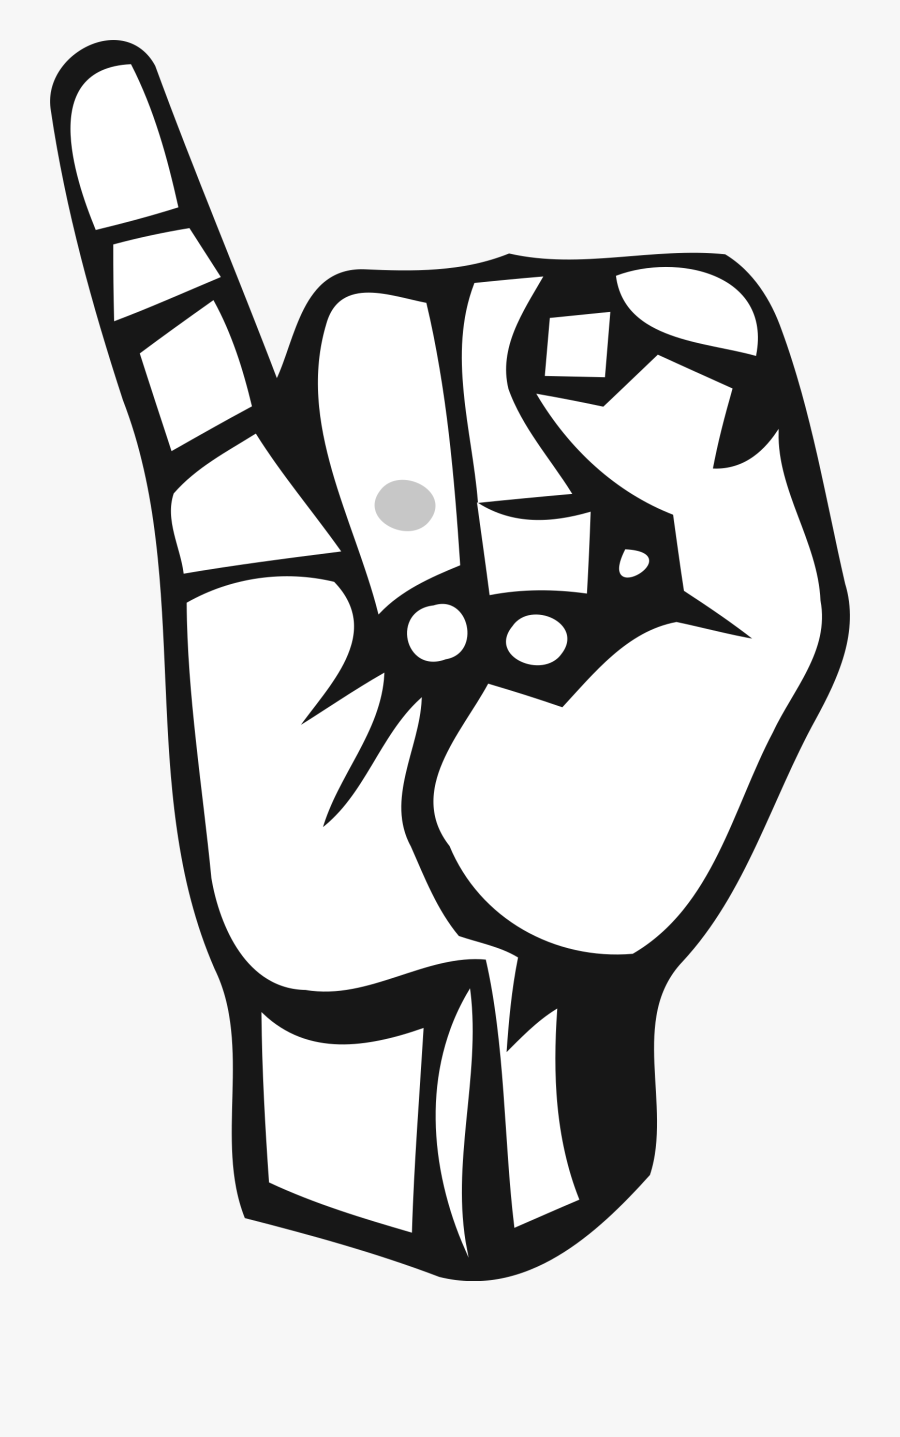 Sign Language Letter I Png, Transparent Clipart